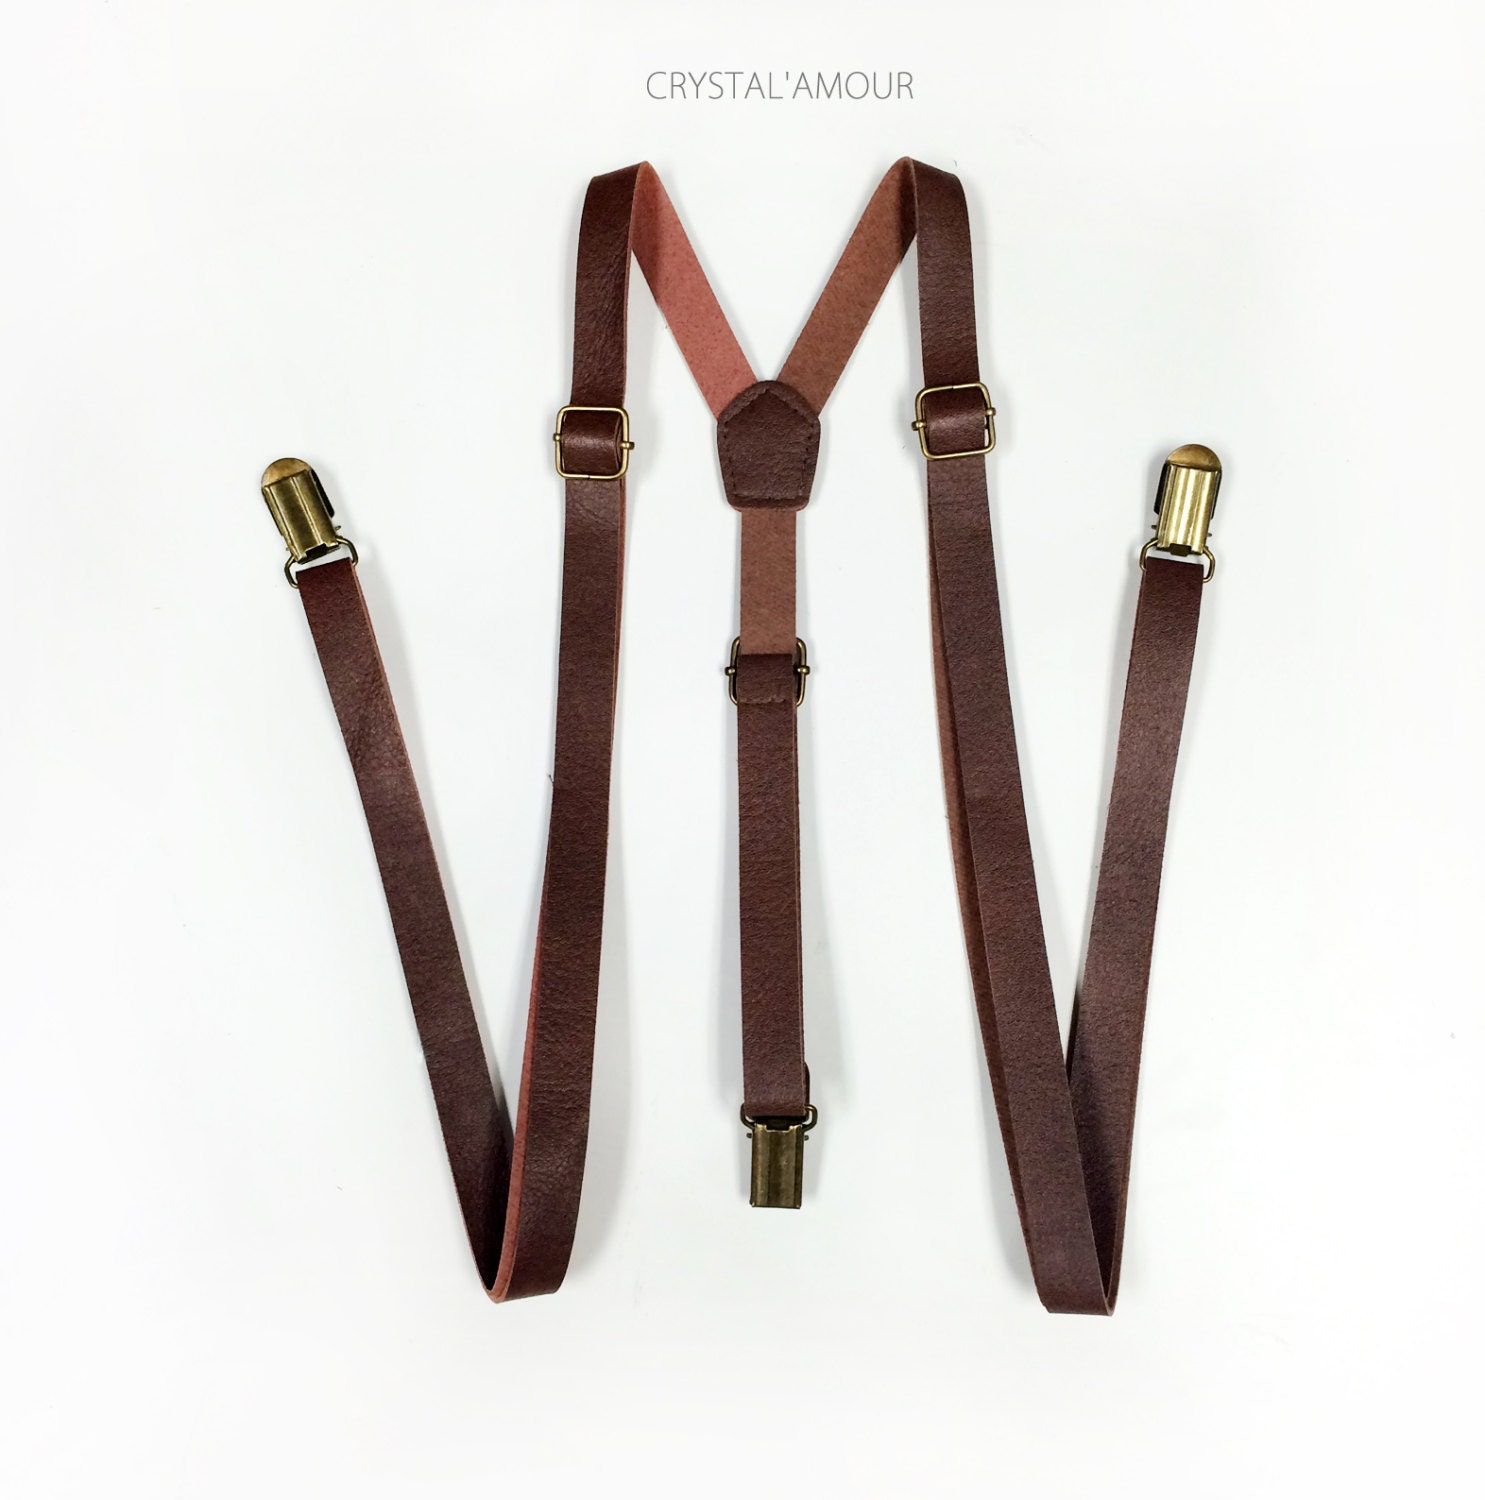 Most of our casual and dress leather suspenders come in either black or brown leather and in a choice of attachment styles including finger clip or button. No matter what your style objective, you will find the perfect pair of leather suspenders in our collection.